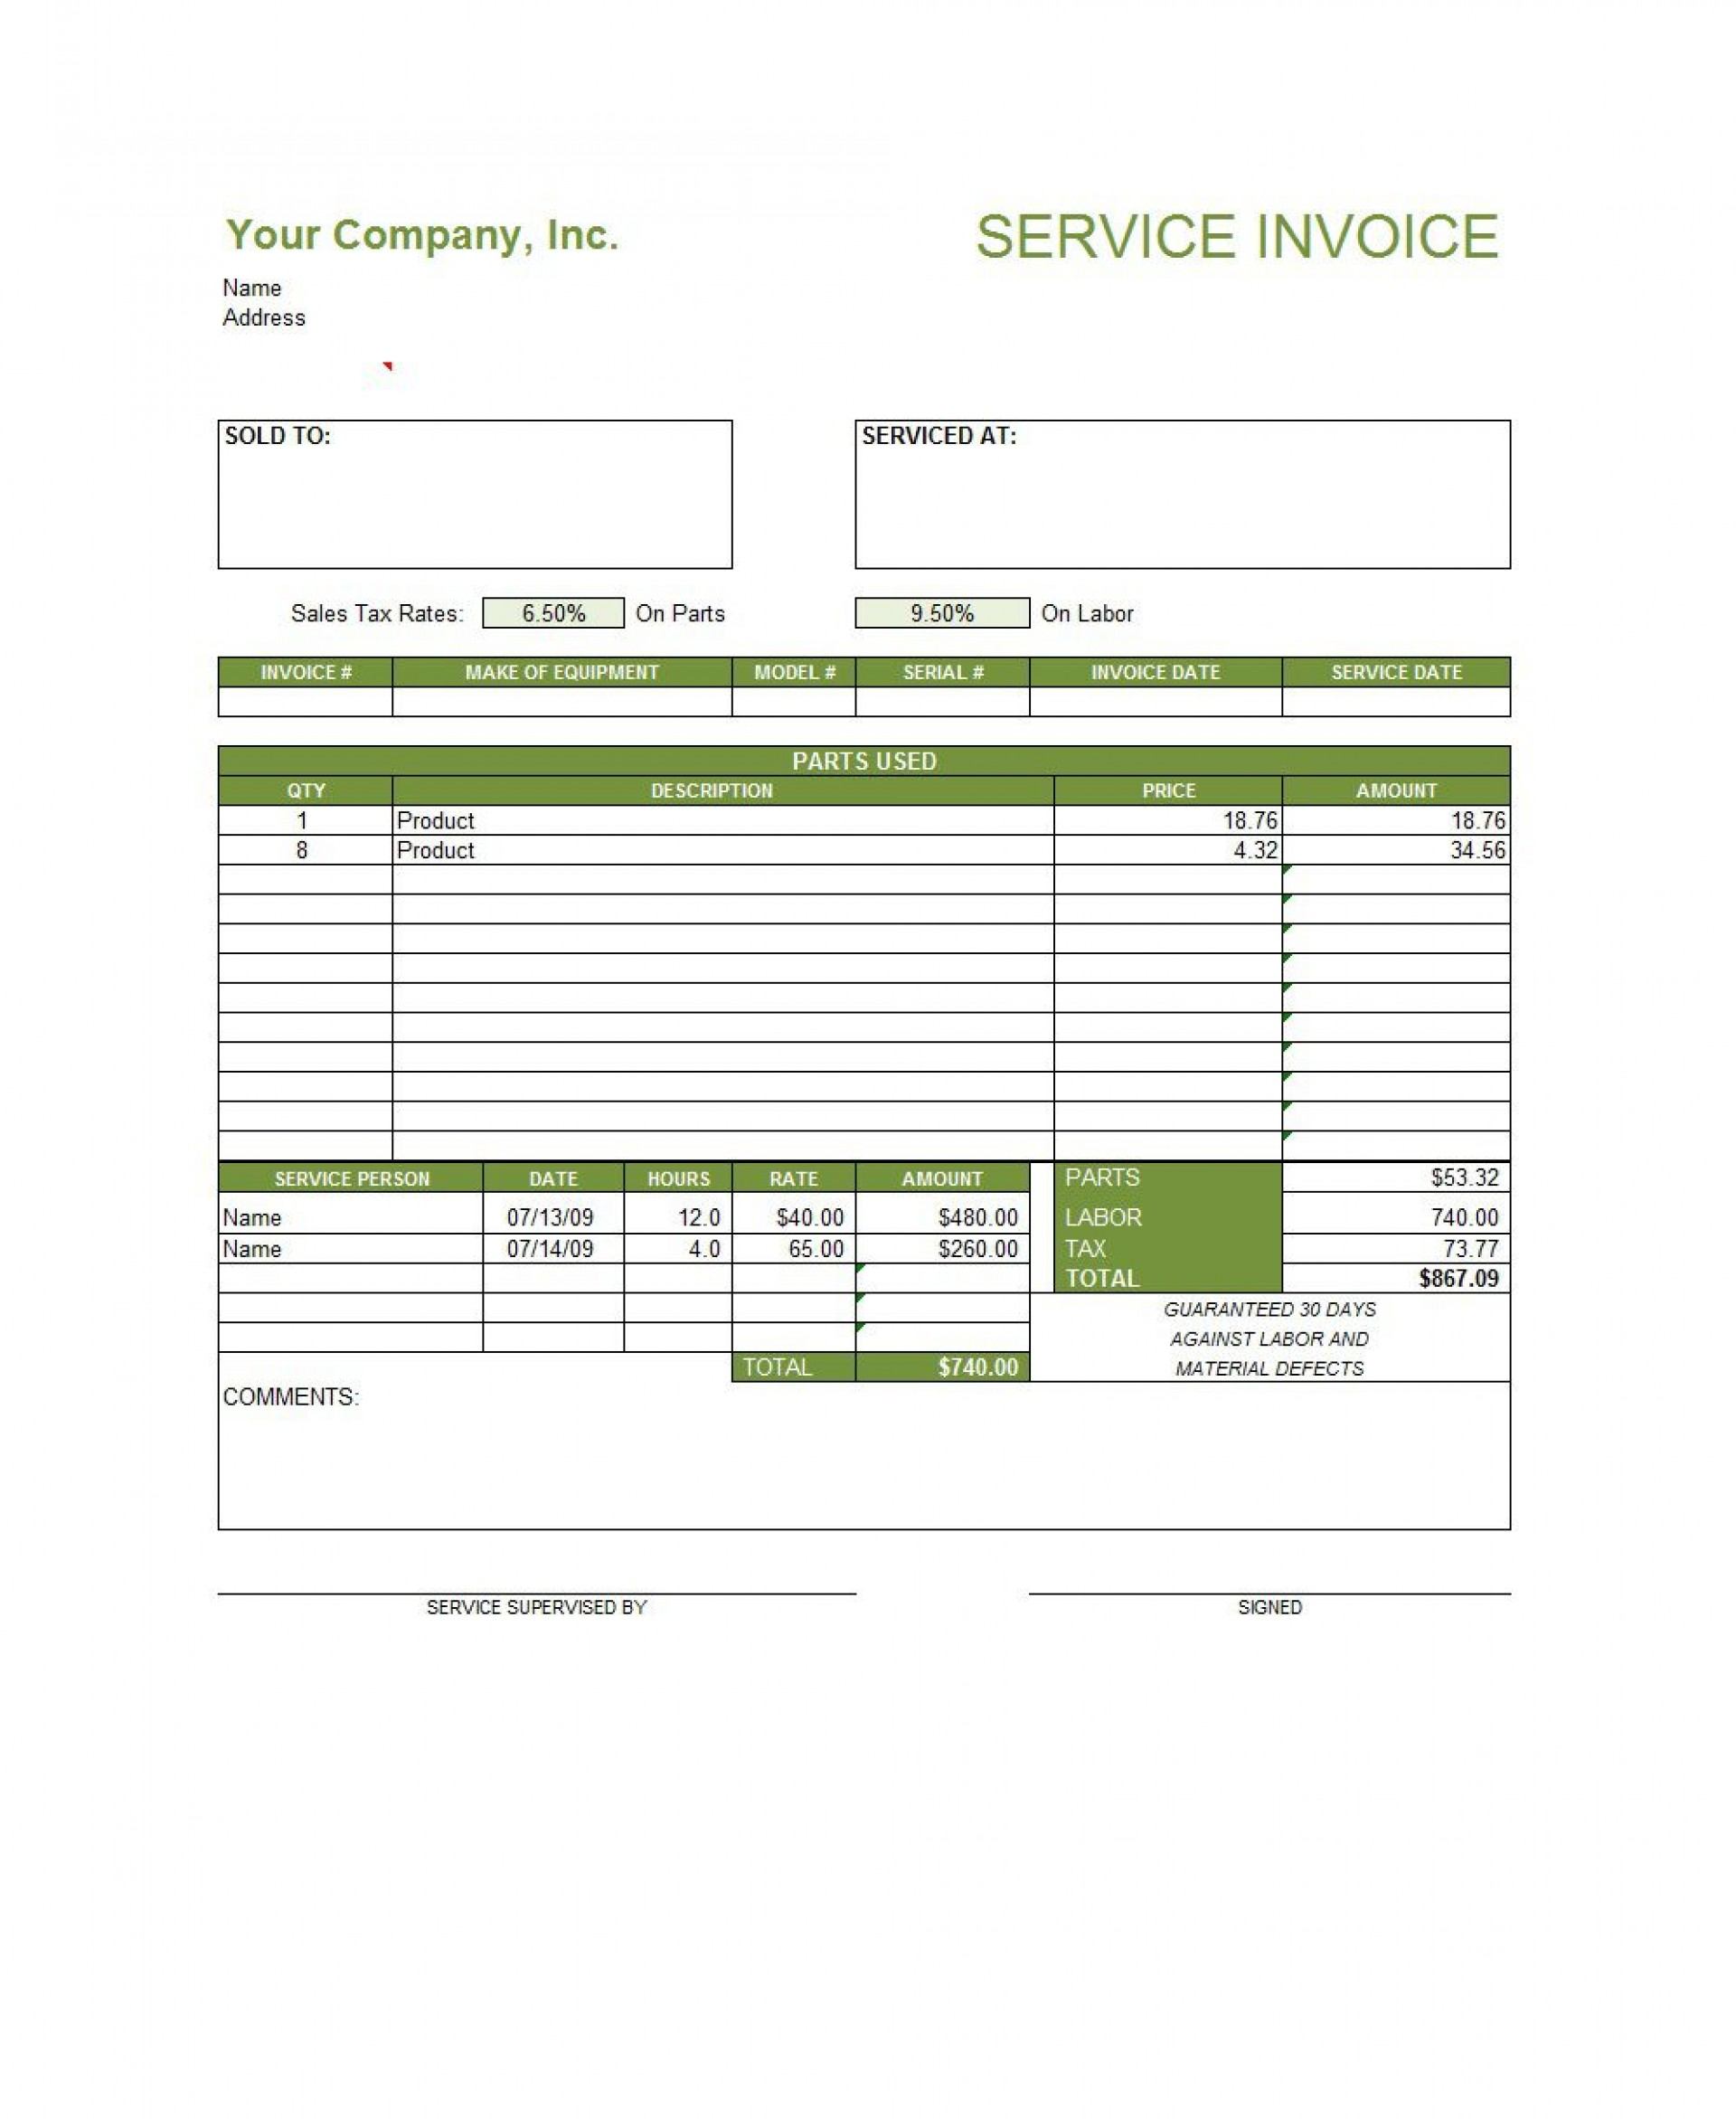 008 Shocking Free Service Invoice Template High Def  Microsoft Word Printable Form1920